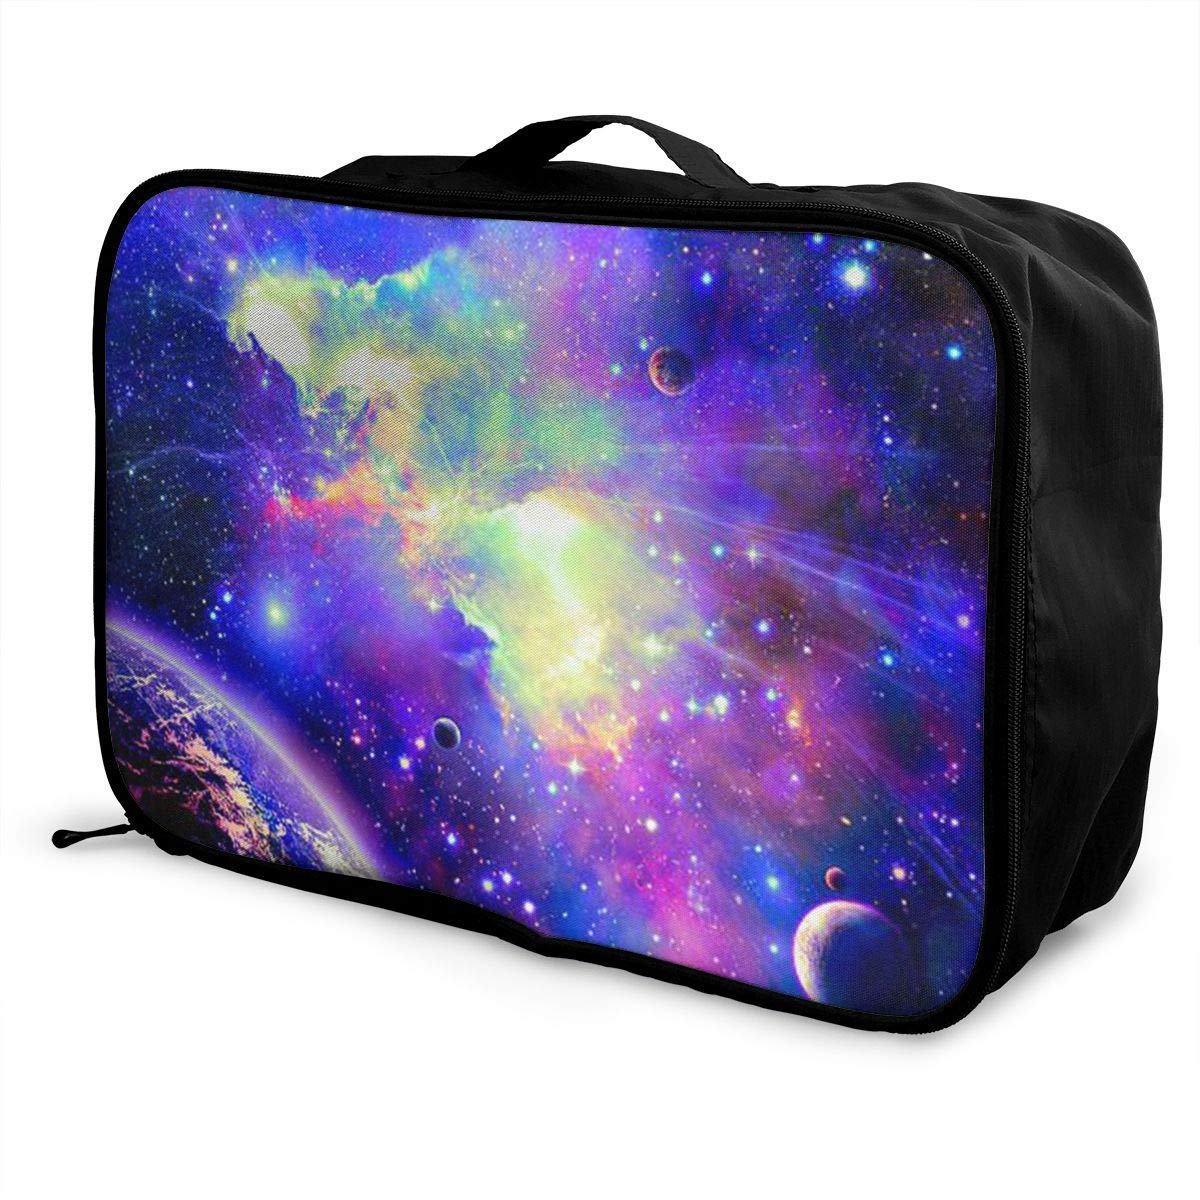 Portable Luggage Duffel Bag Galaxy Travel Bags Carry-on In Trolley Handle